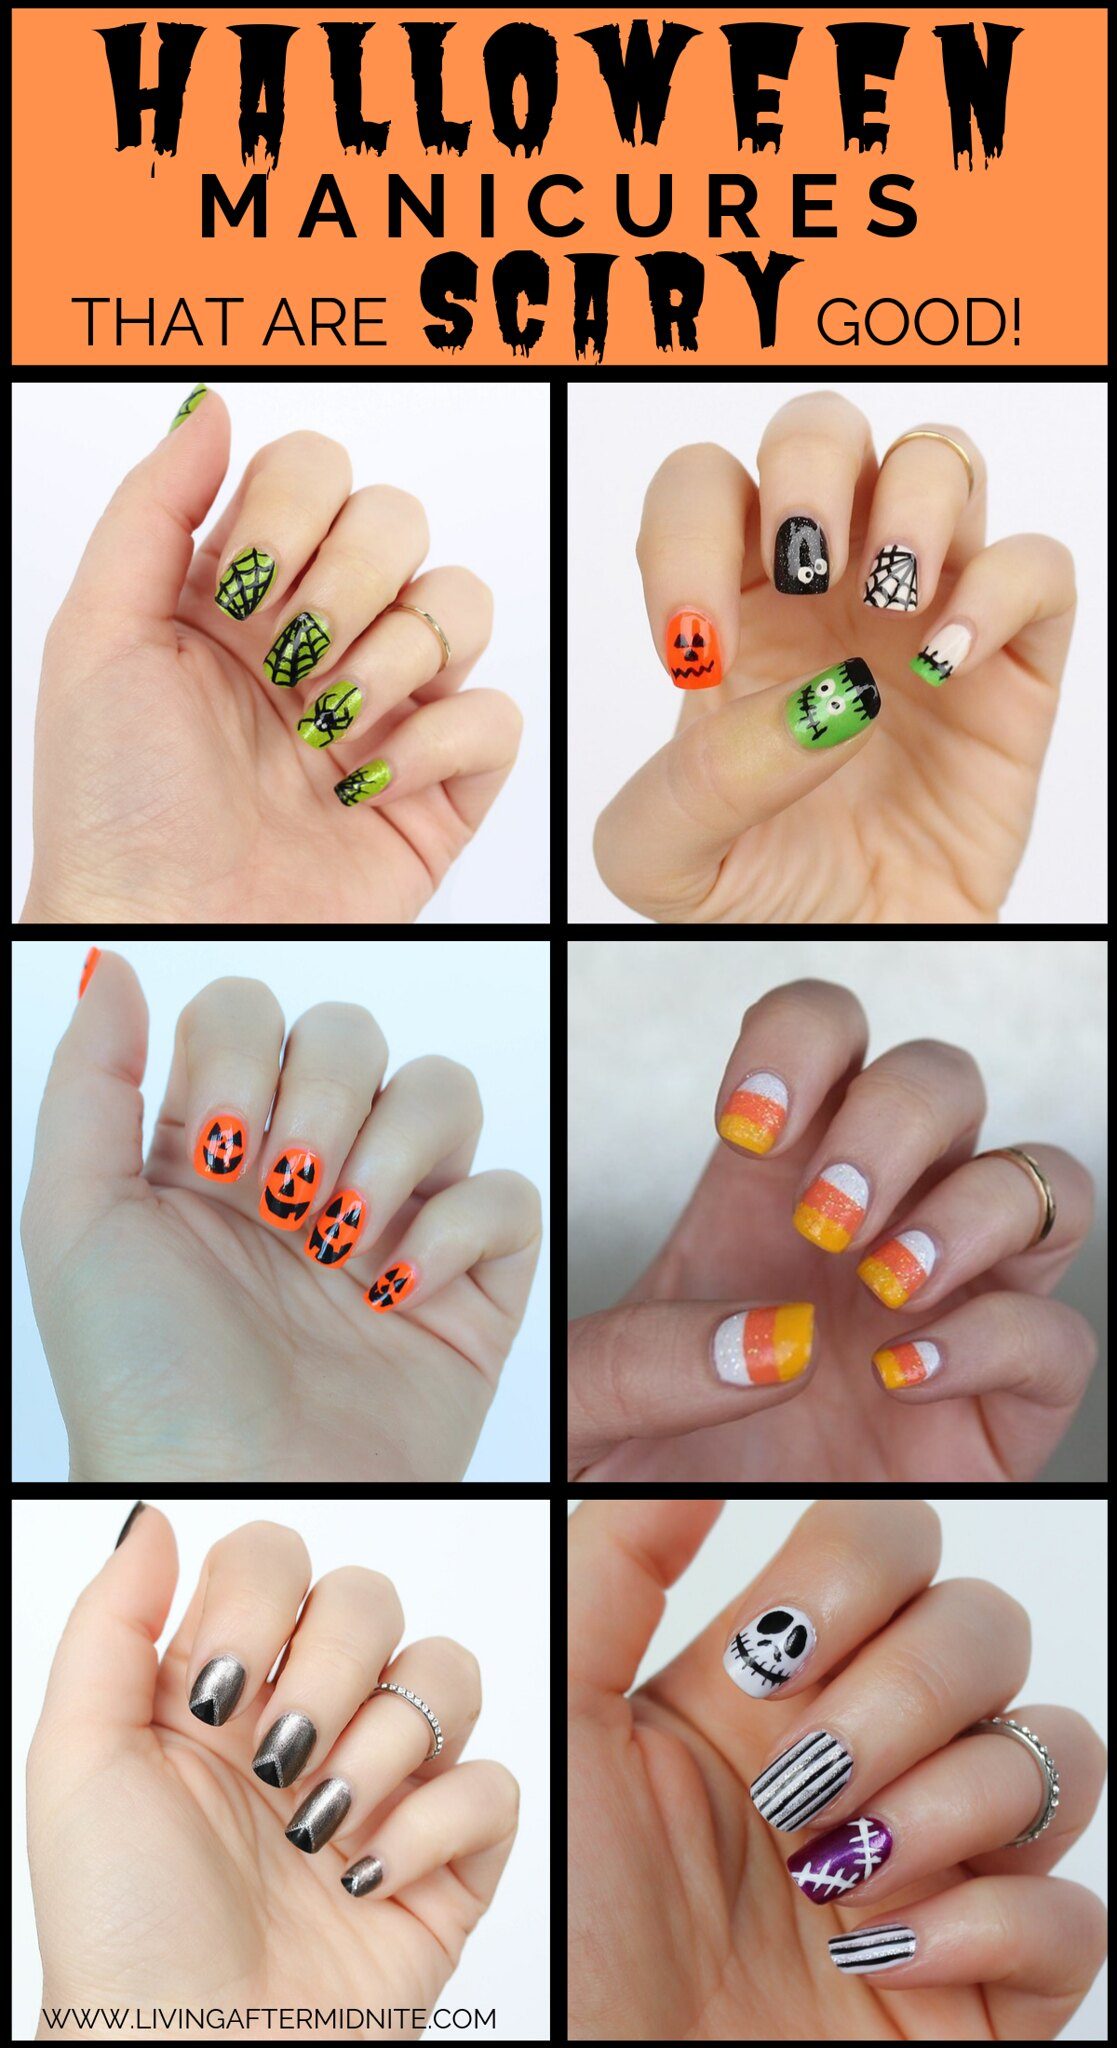 6 Halloween Manicures That are SCARY Good | Halloween Nails | Nail Art | Nail Designs | Spooky Nails